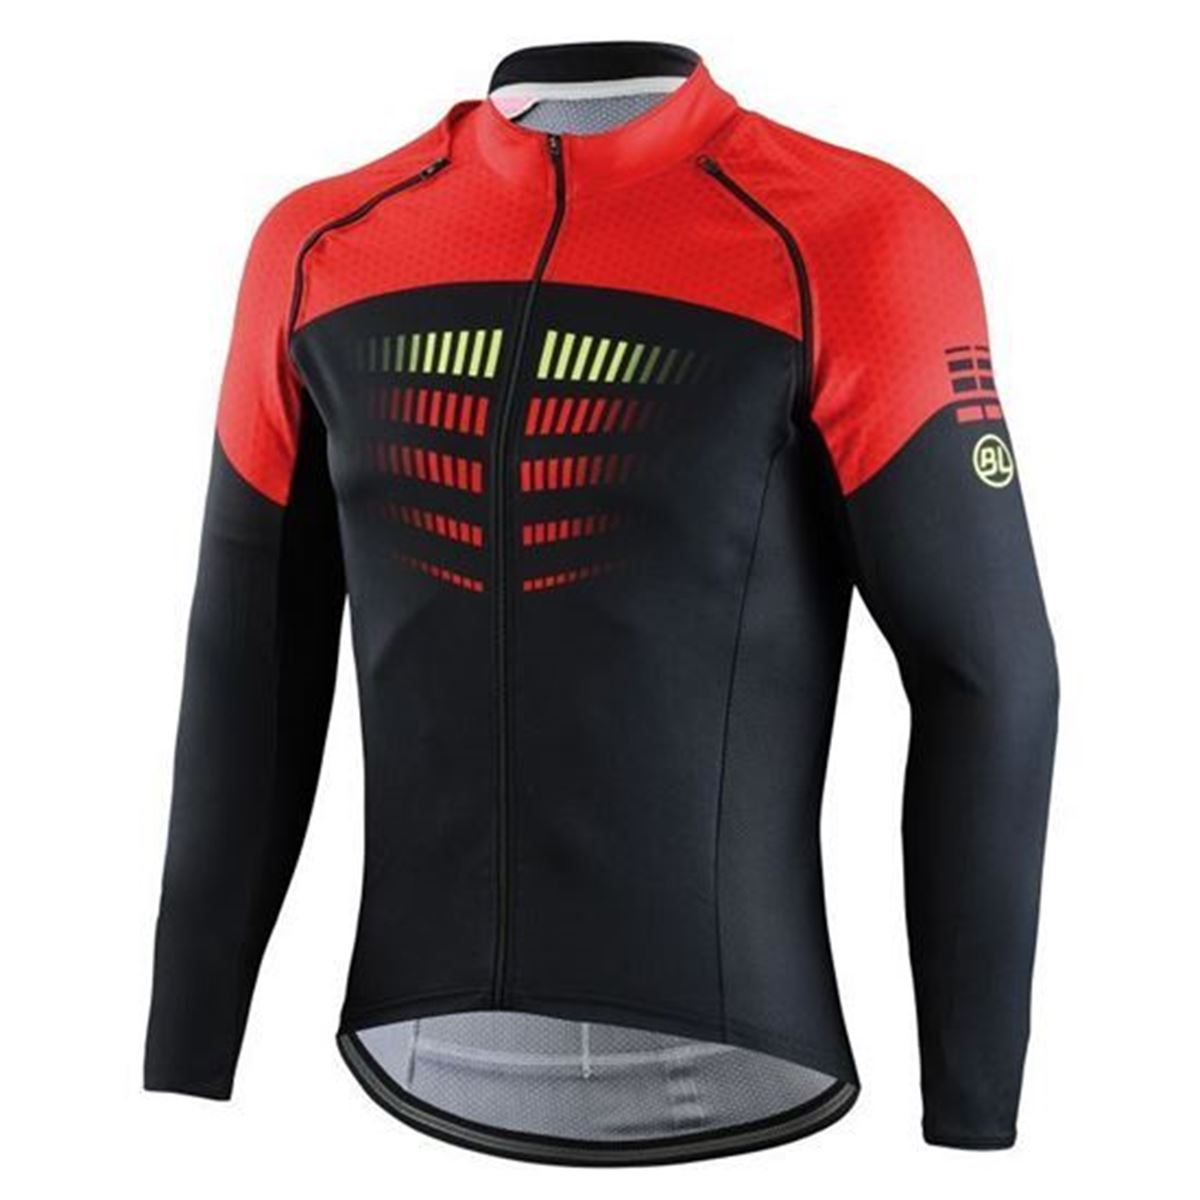 Picture for category Long Sleeve Jerseys